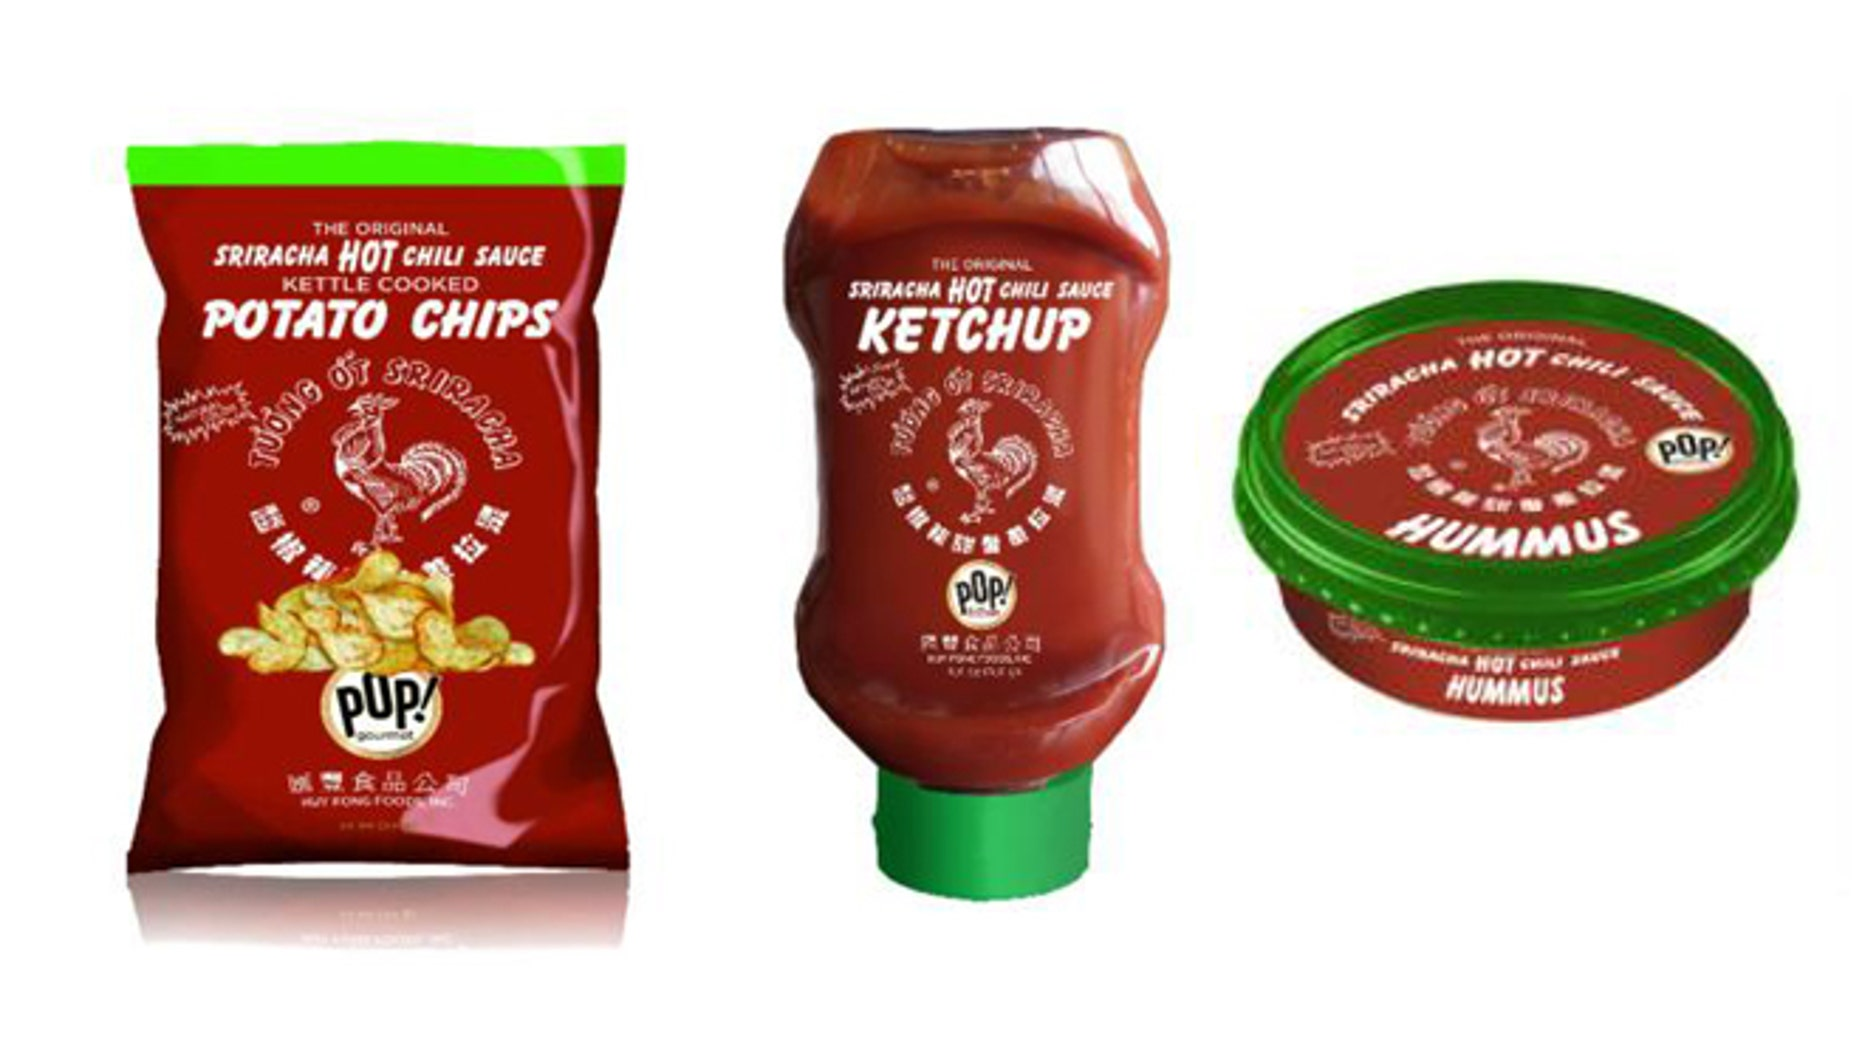 Potato chips, ketchup and hummus- oh my! All Sriracha, all the time.